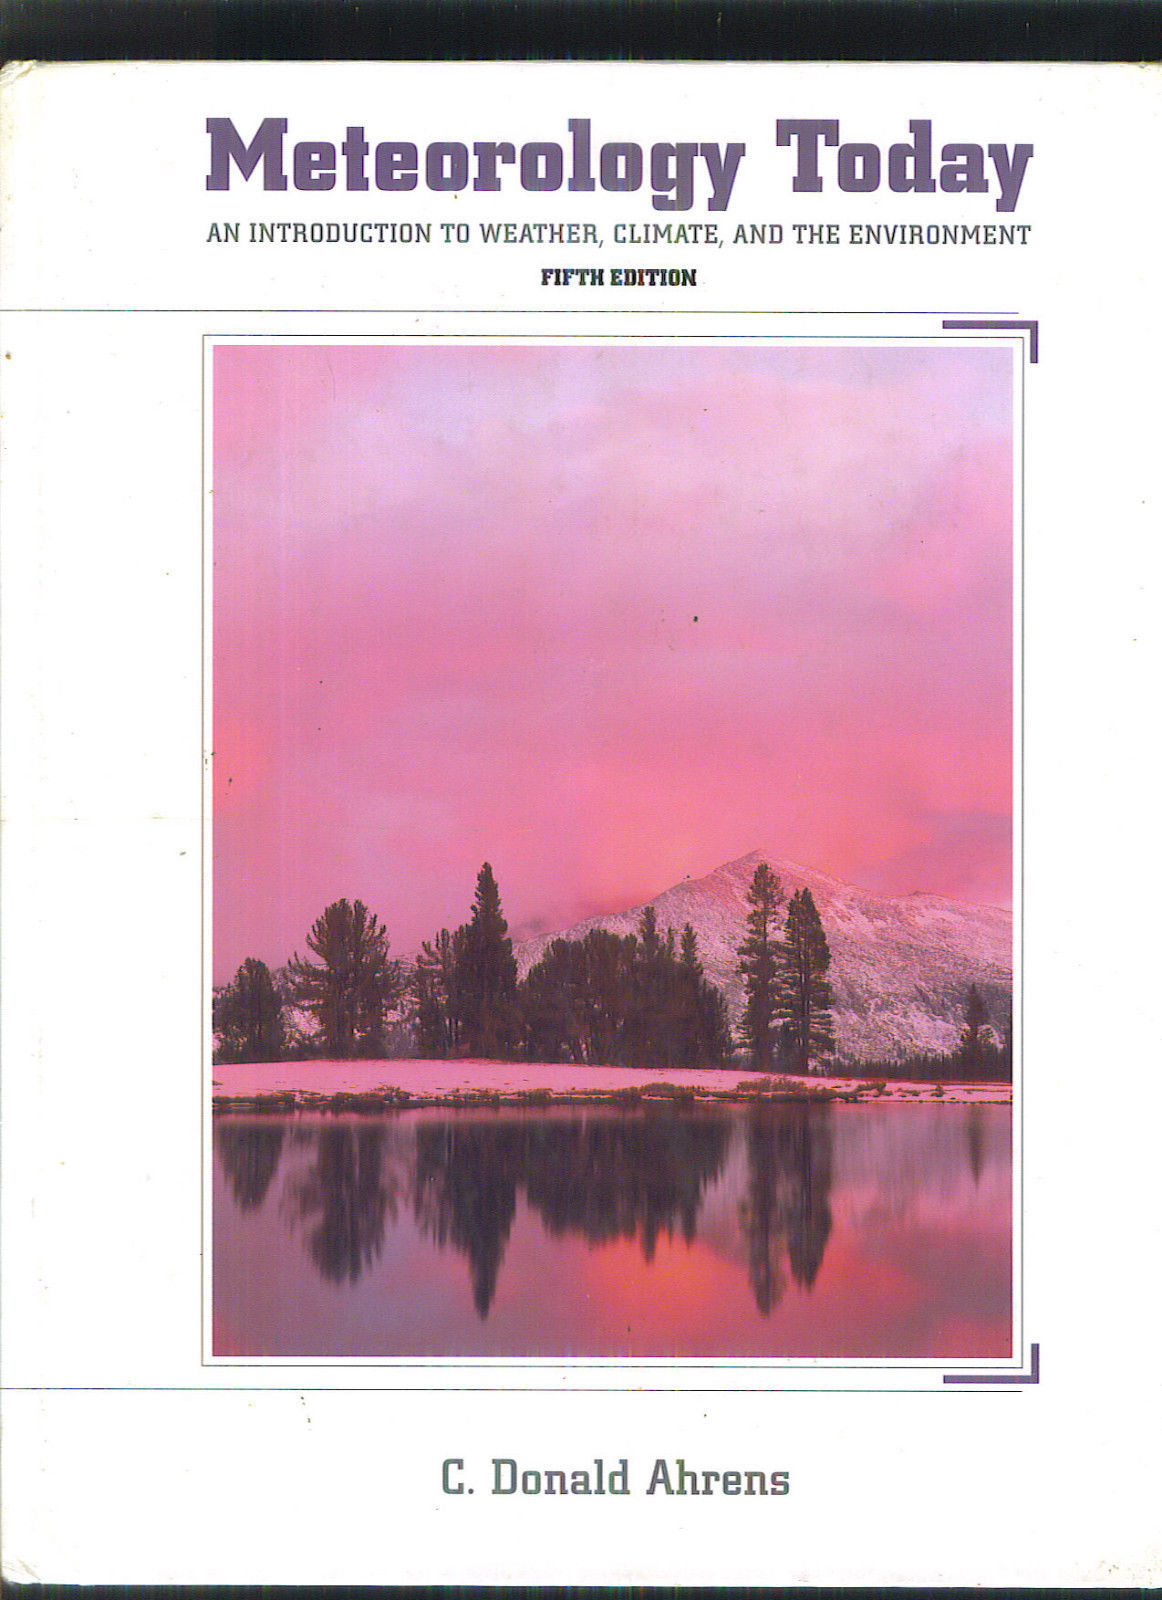 METEOROLOGY TODAY 1994 Donald Ahrens Book WEATHER CLIMATE ENVIRONMENT